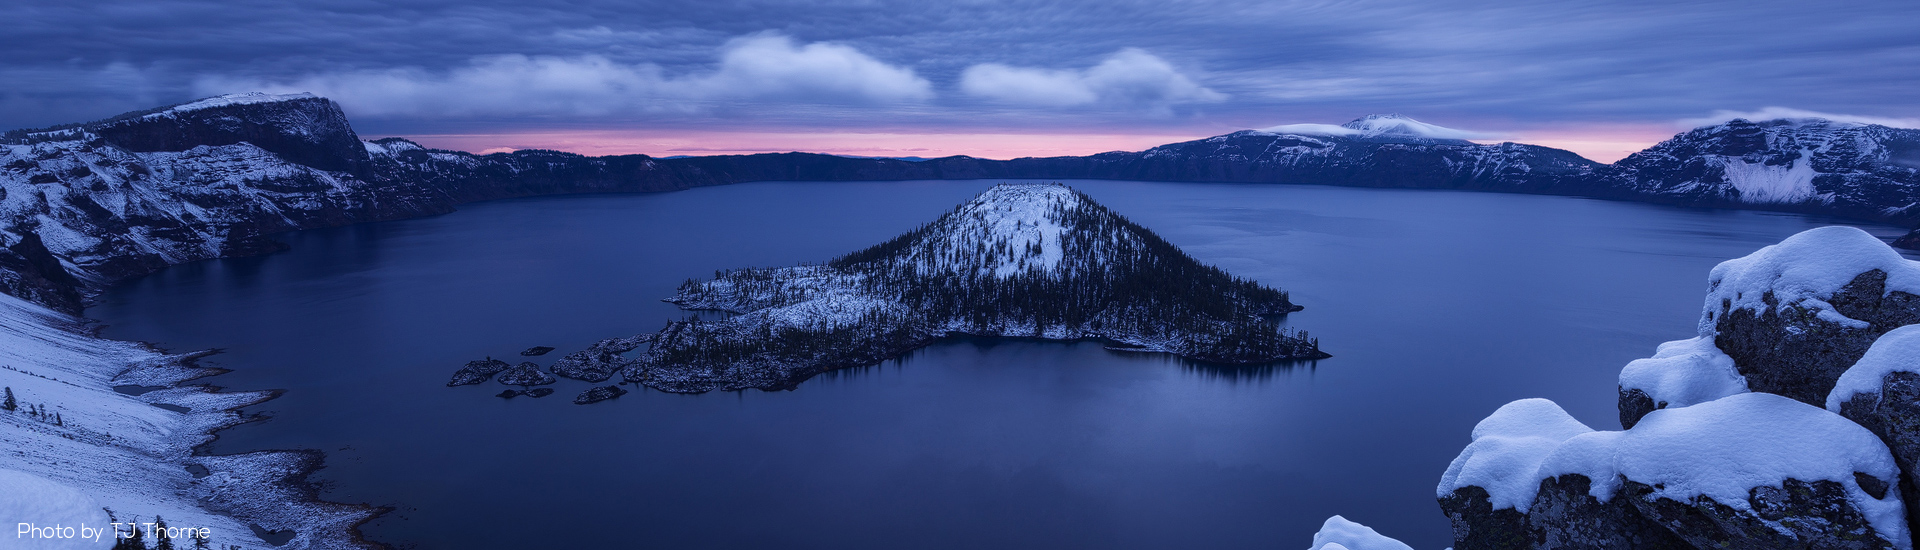 Crater Lake (photo by TJ Thorne)